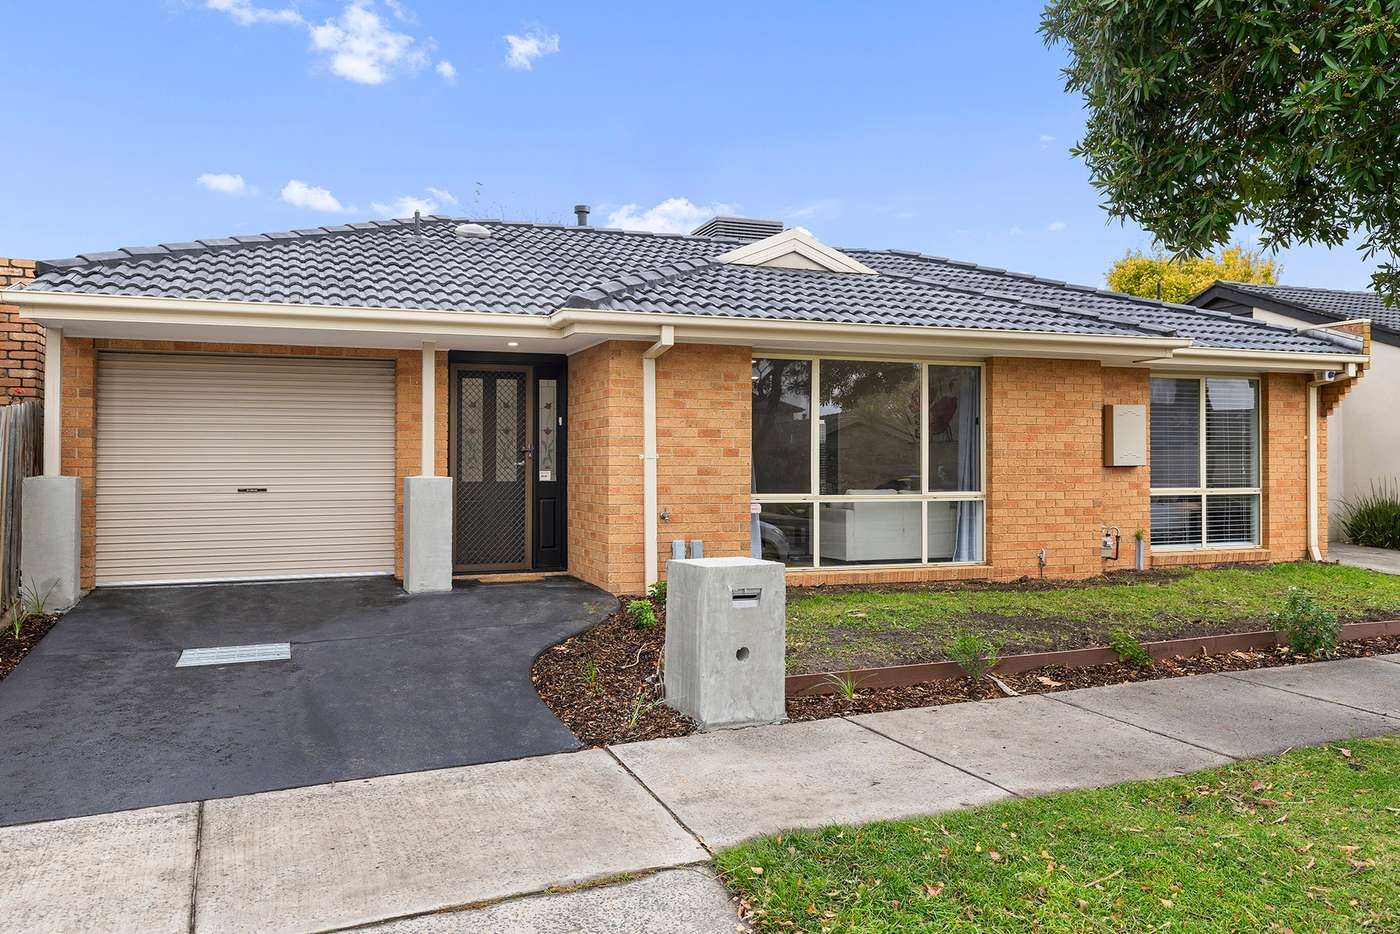 Main view of Homely house listing, 216 Dandelion Drive, Rowville VIC 3178